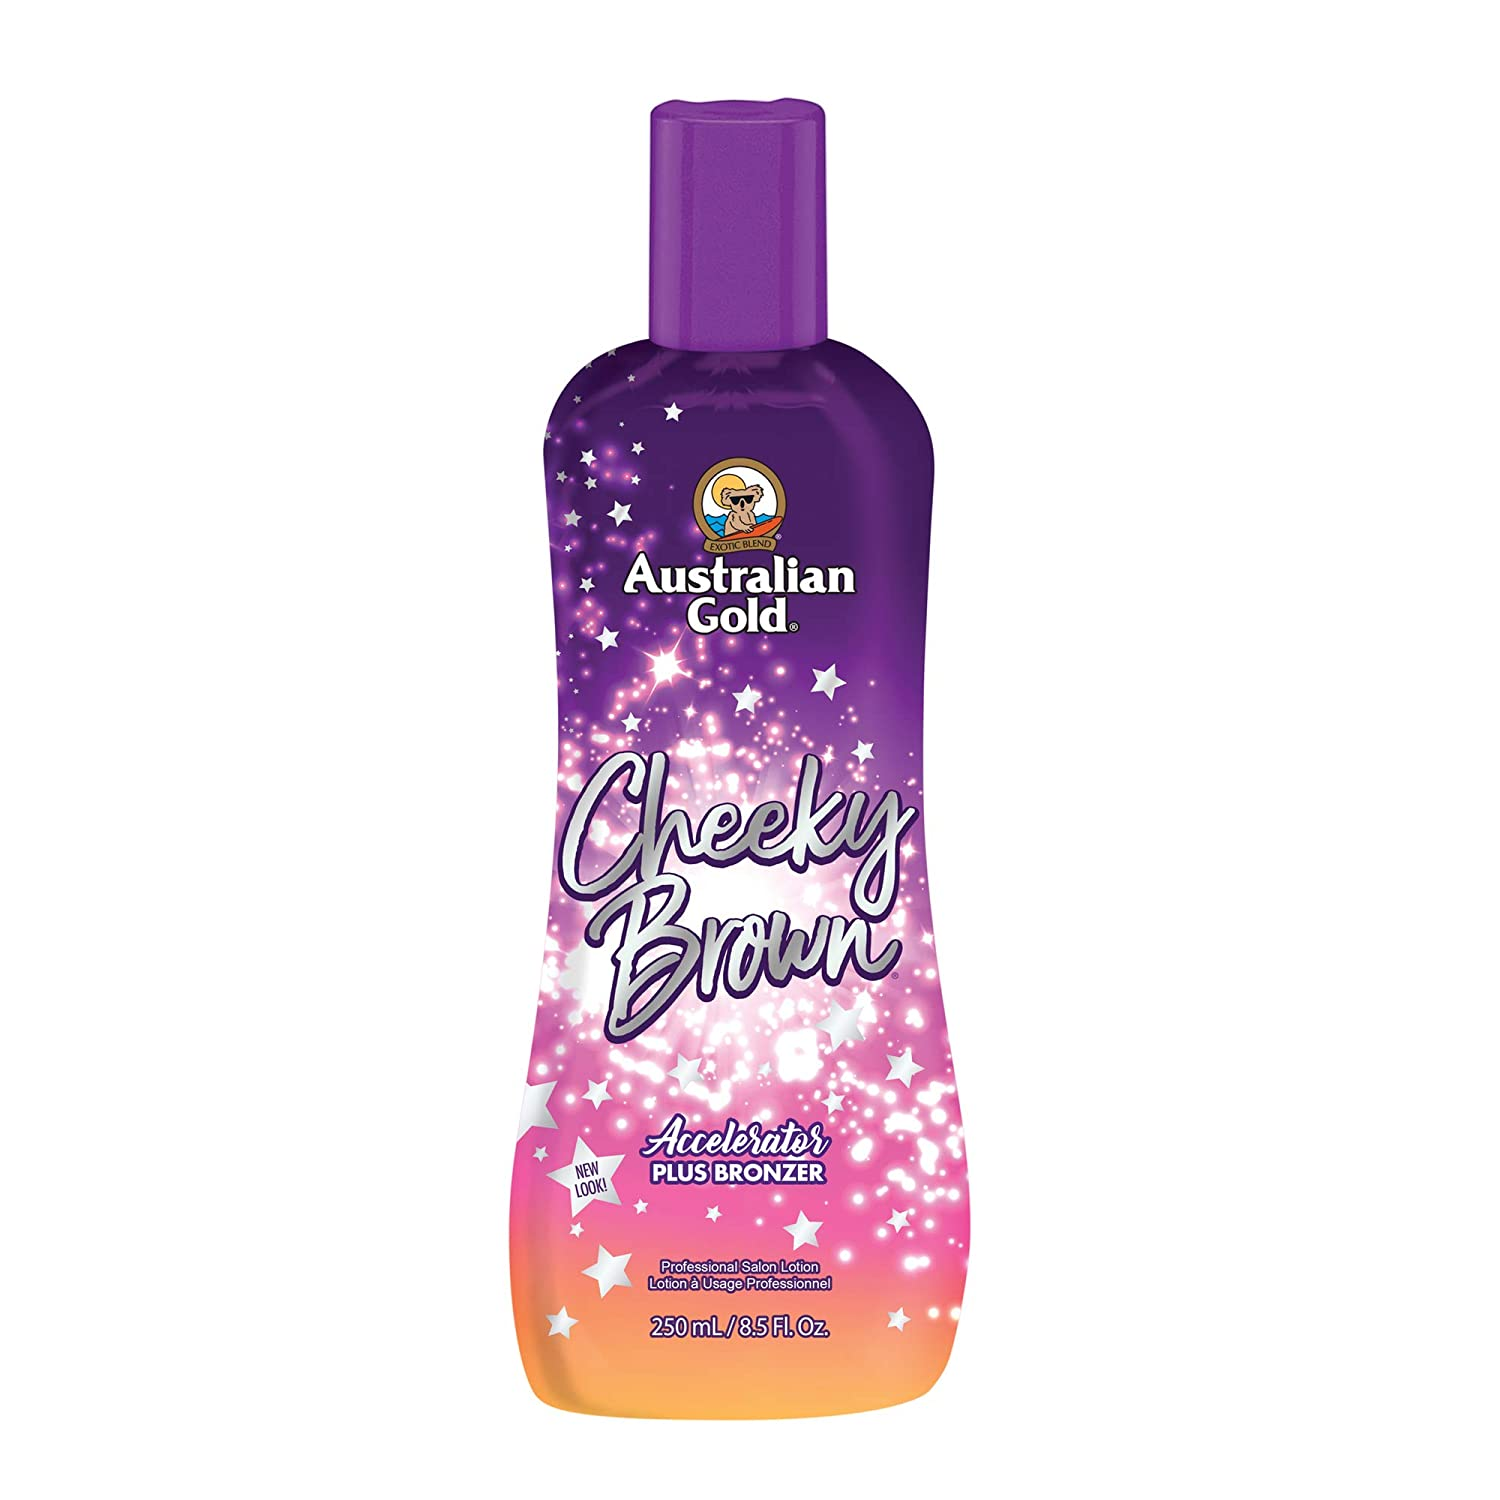 Australian Gold, CHEEKY BROWN Accelerator Dark Natural Bronzers, Tanning Bed Lotion 8.5 oz AGCheekyB250